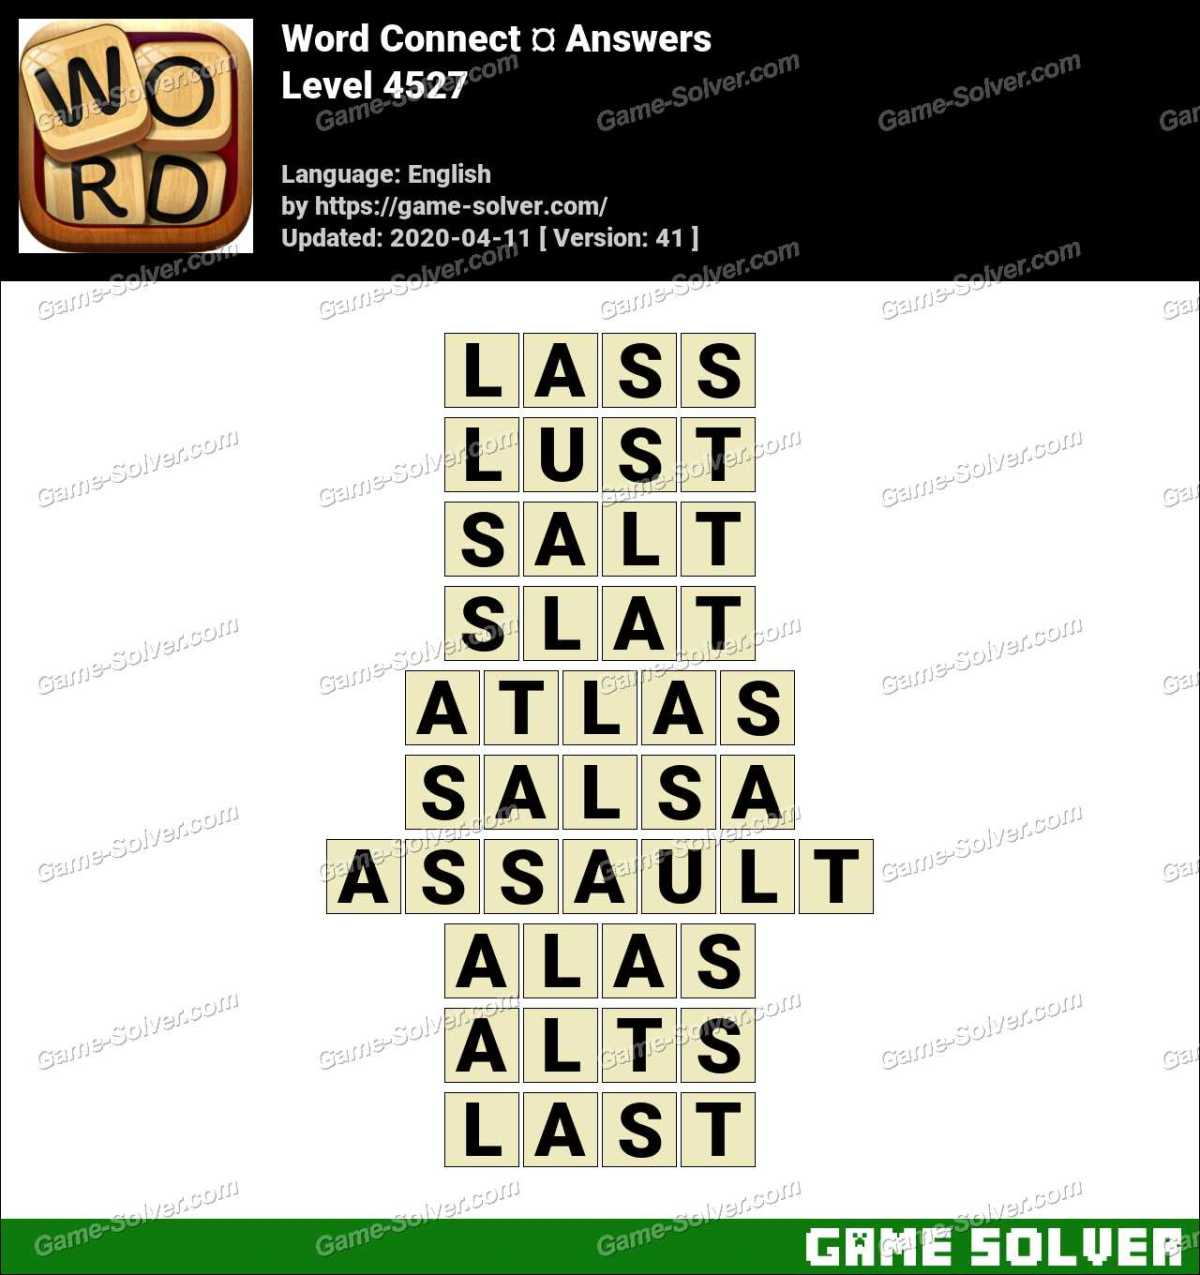 Word Connect Level 4527 Answers